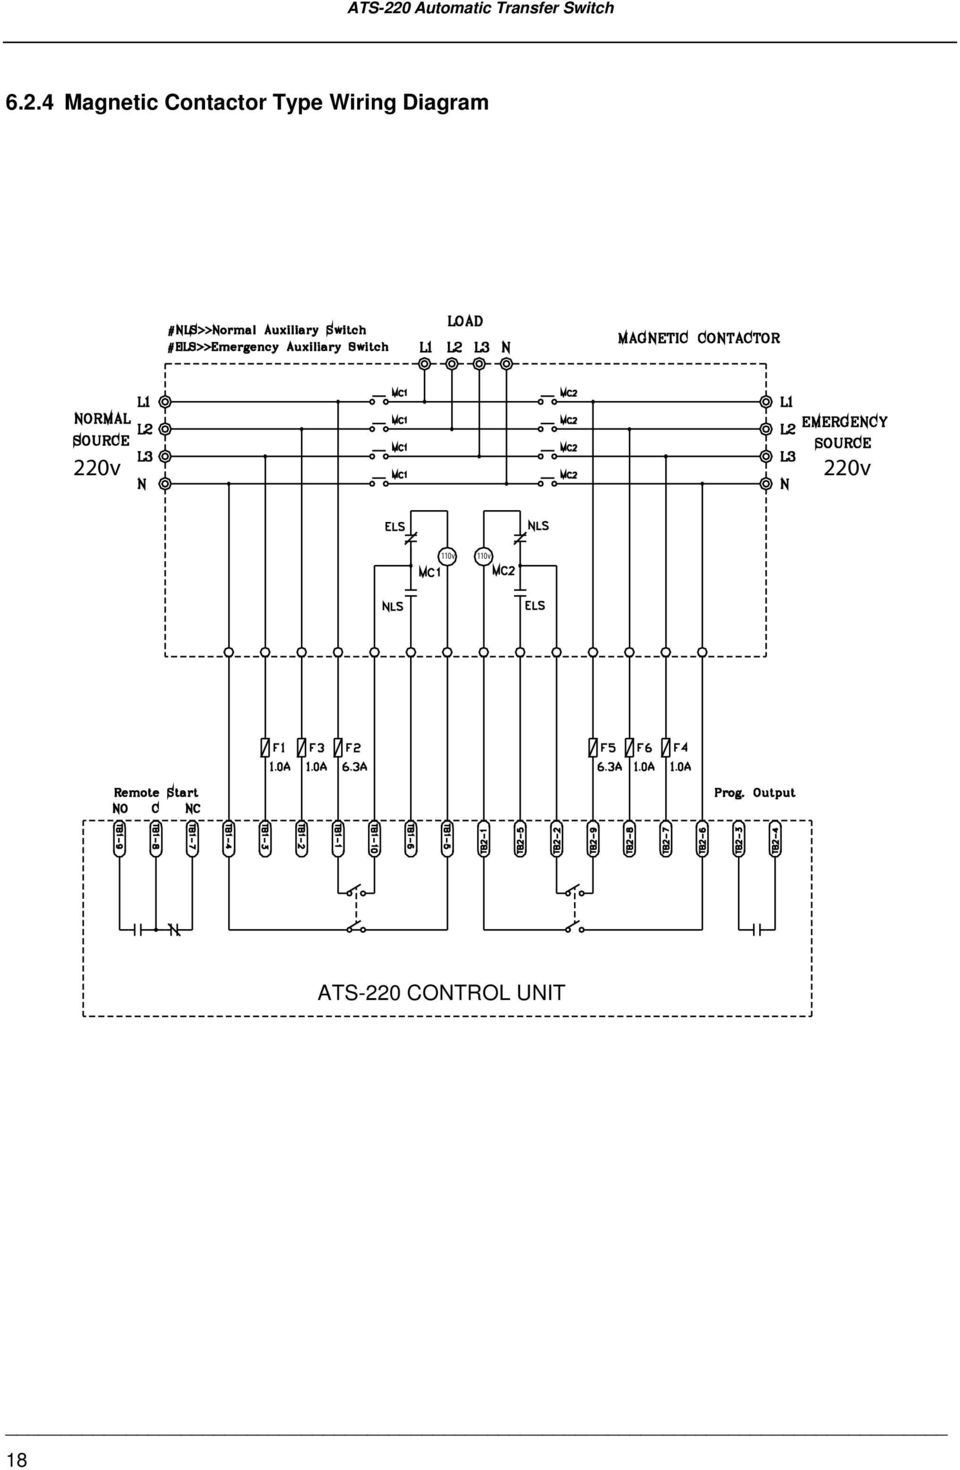 hight resolution of 19 6 3 3p 380v connecting wire diagram mccb type wiring diagram motor normal phase n emergency